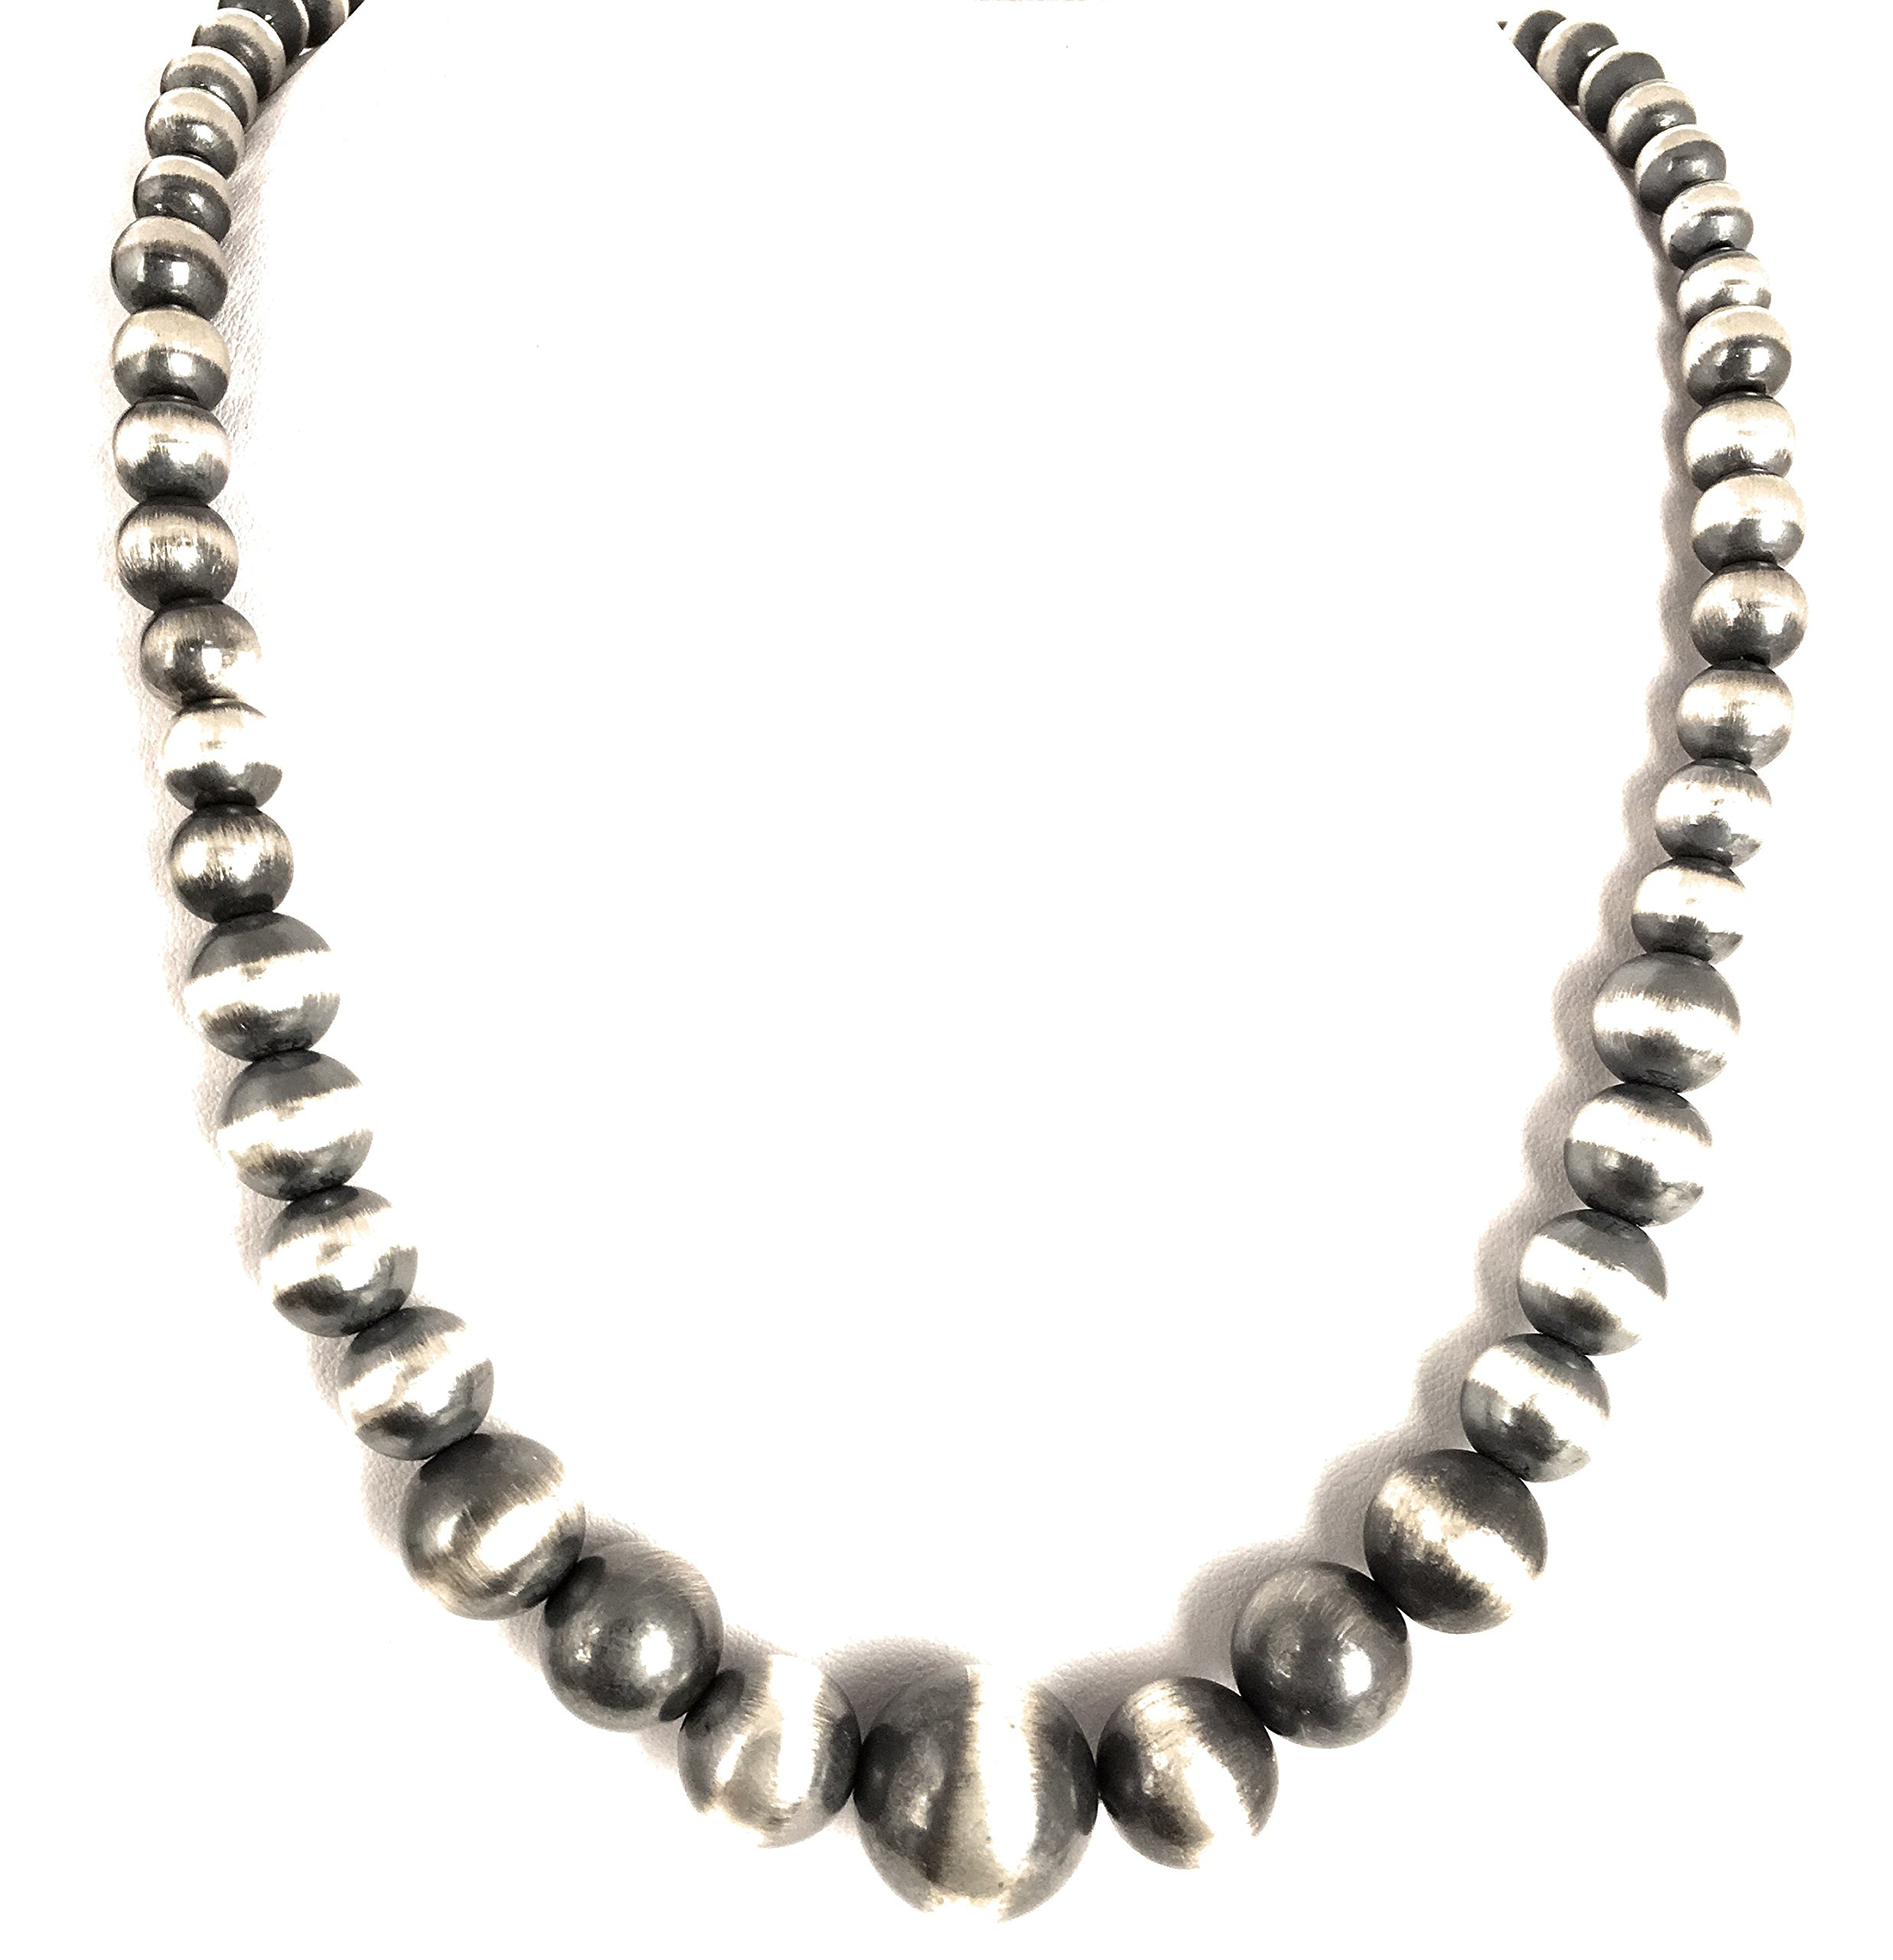 Masha Storewide Sale ! Sterling Silver Necklace By Navajo Pearls Graduated, Made in USA - Exclusive Southwestern Handmade Jewelry, 19'' in Length Gift